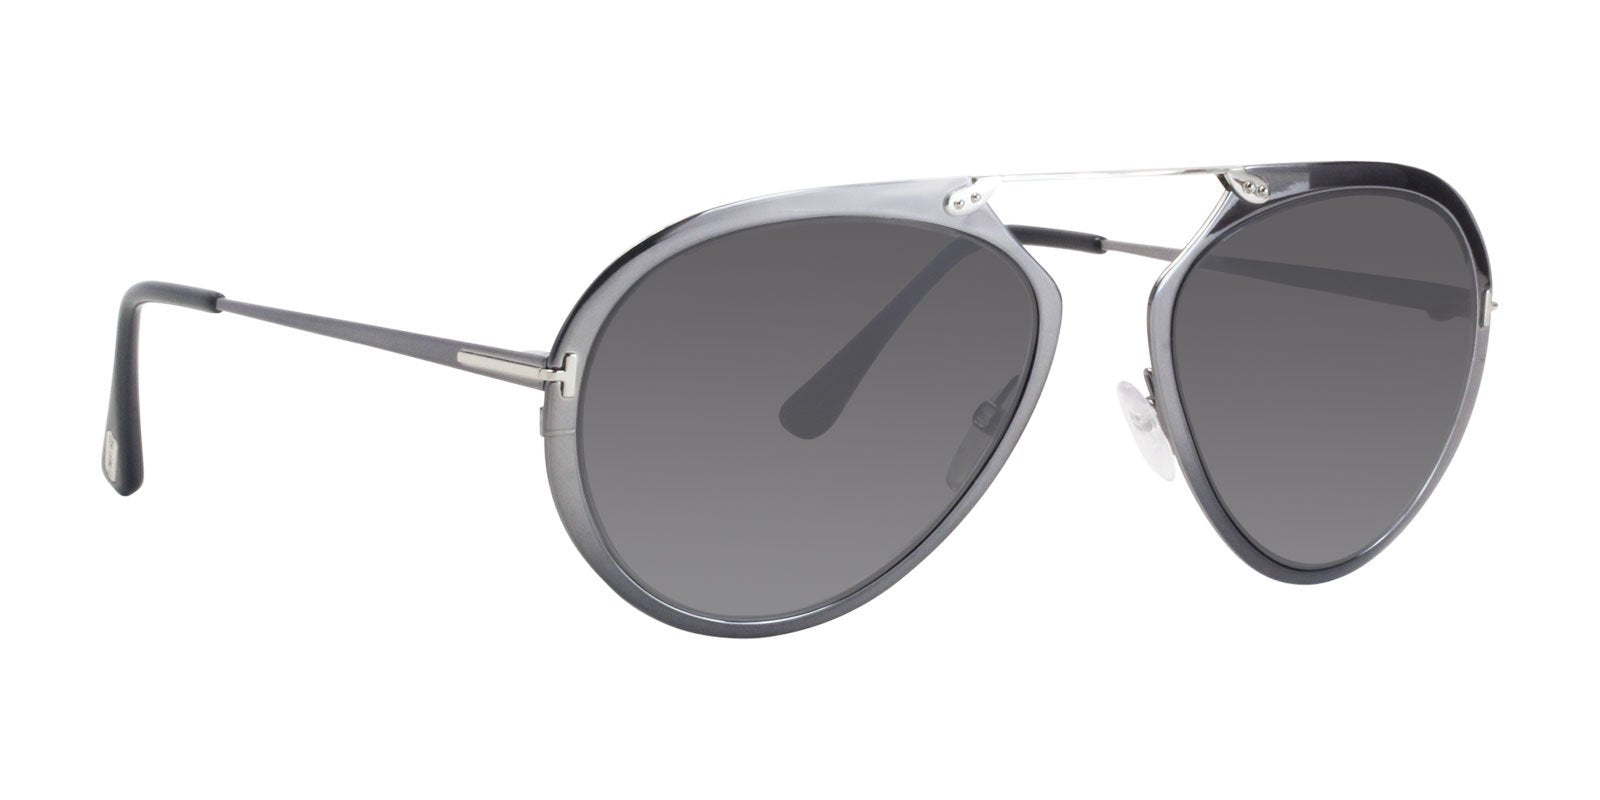 Tom Ford - FT0508 Gray Oval Unisex Sunglasses - 55mm-Sunglasses-Designer Eyes